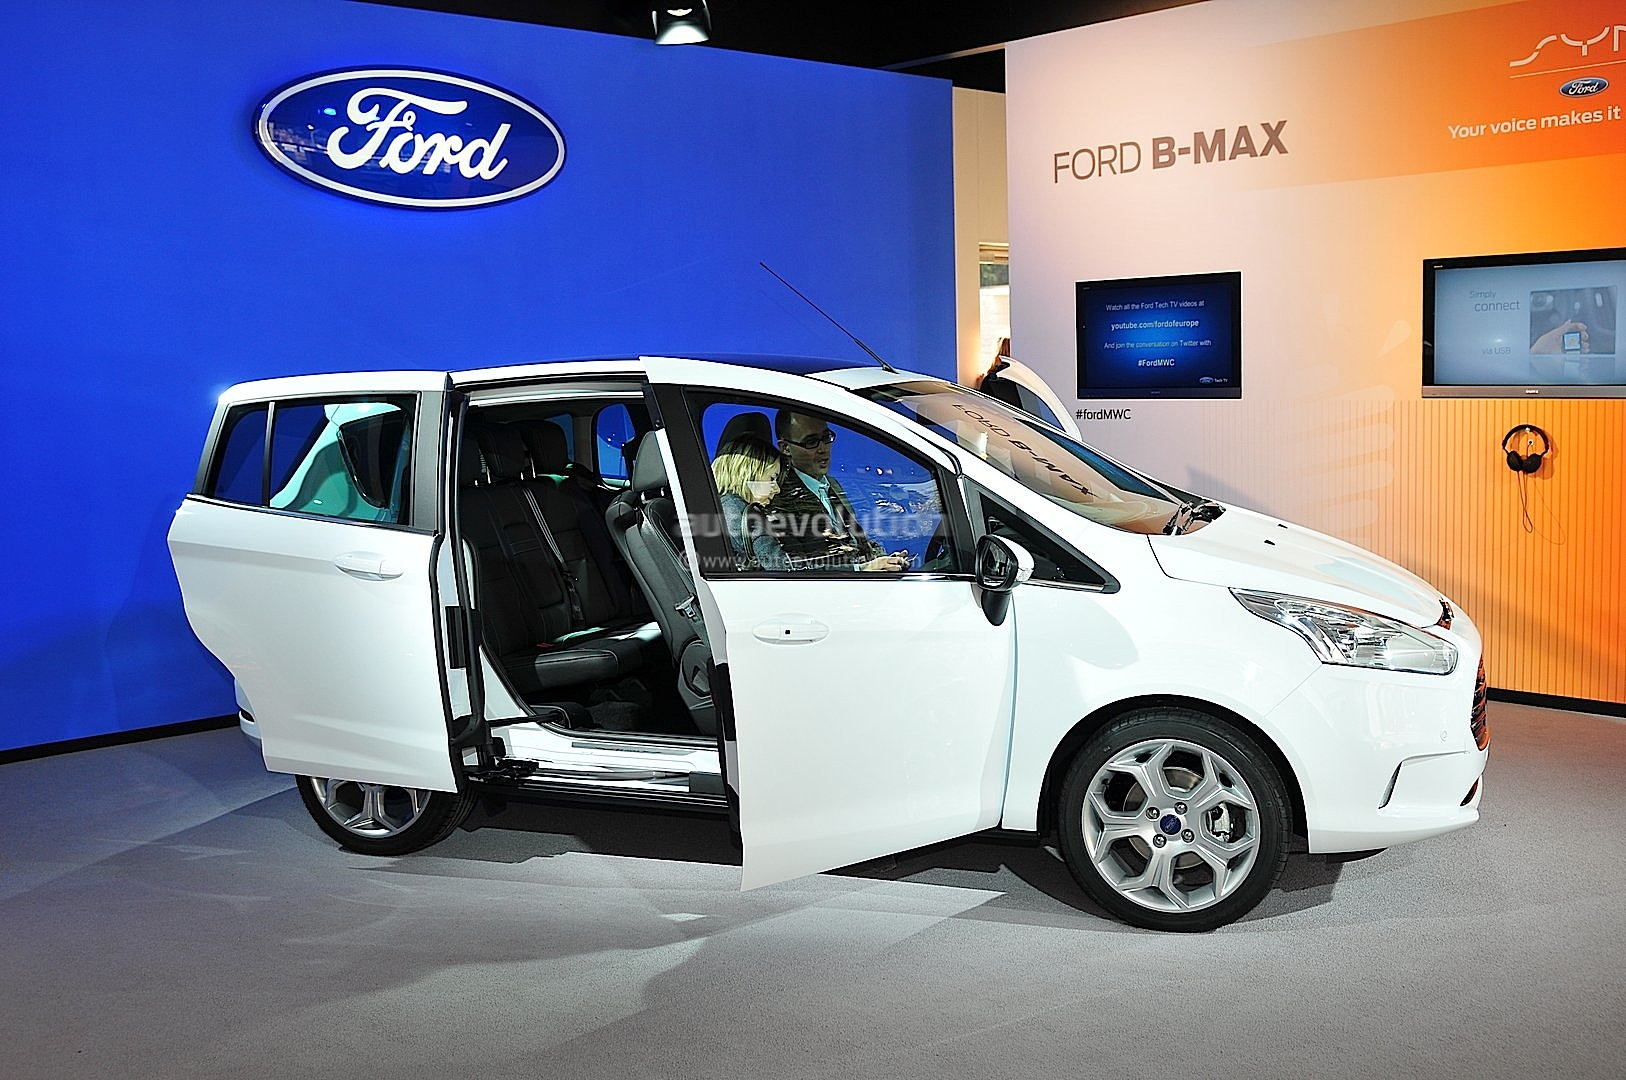 ford b max debuts at 2012 mobile world congress live. Black Bedroom Furniture Sets. Home Design Ideas